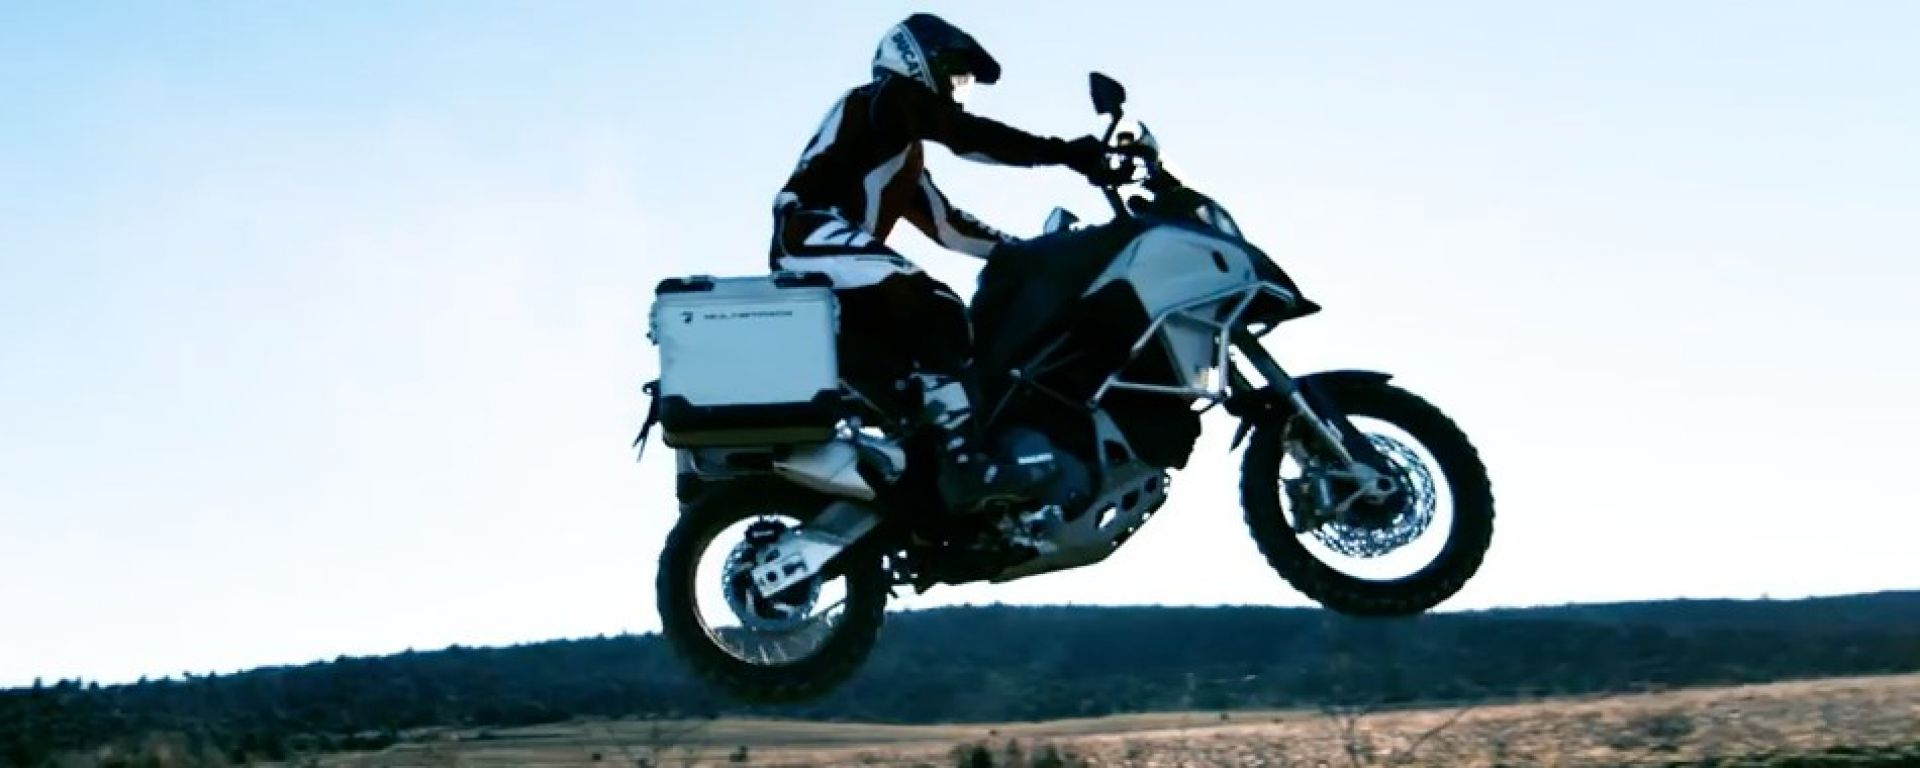 The wild side of Ducati: la Multistrada 1200 Enduro in off road